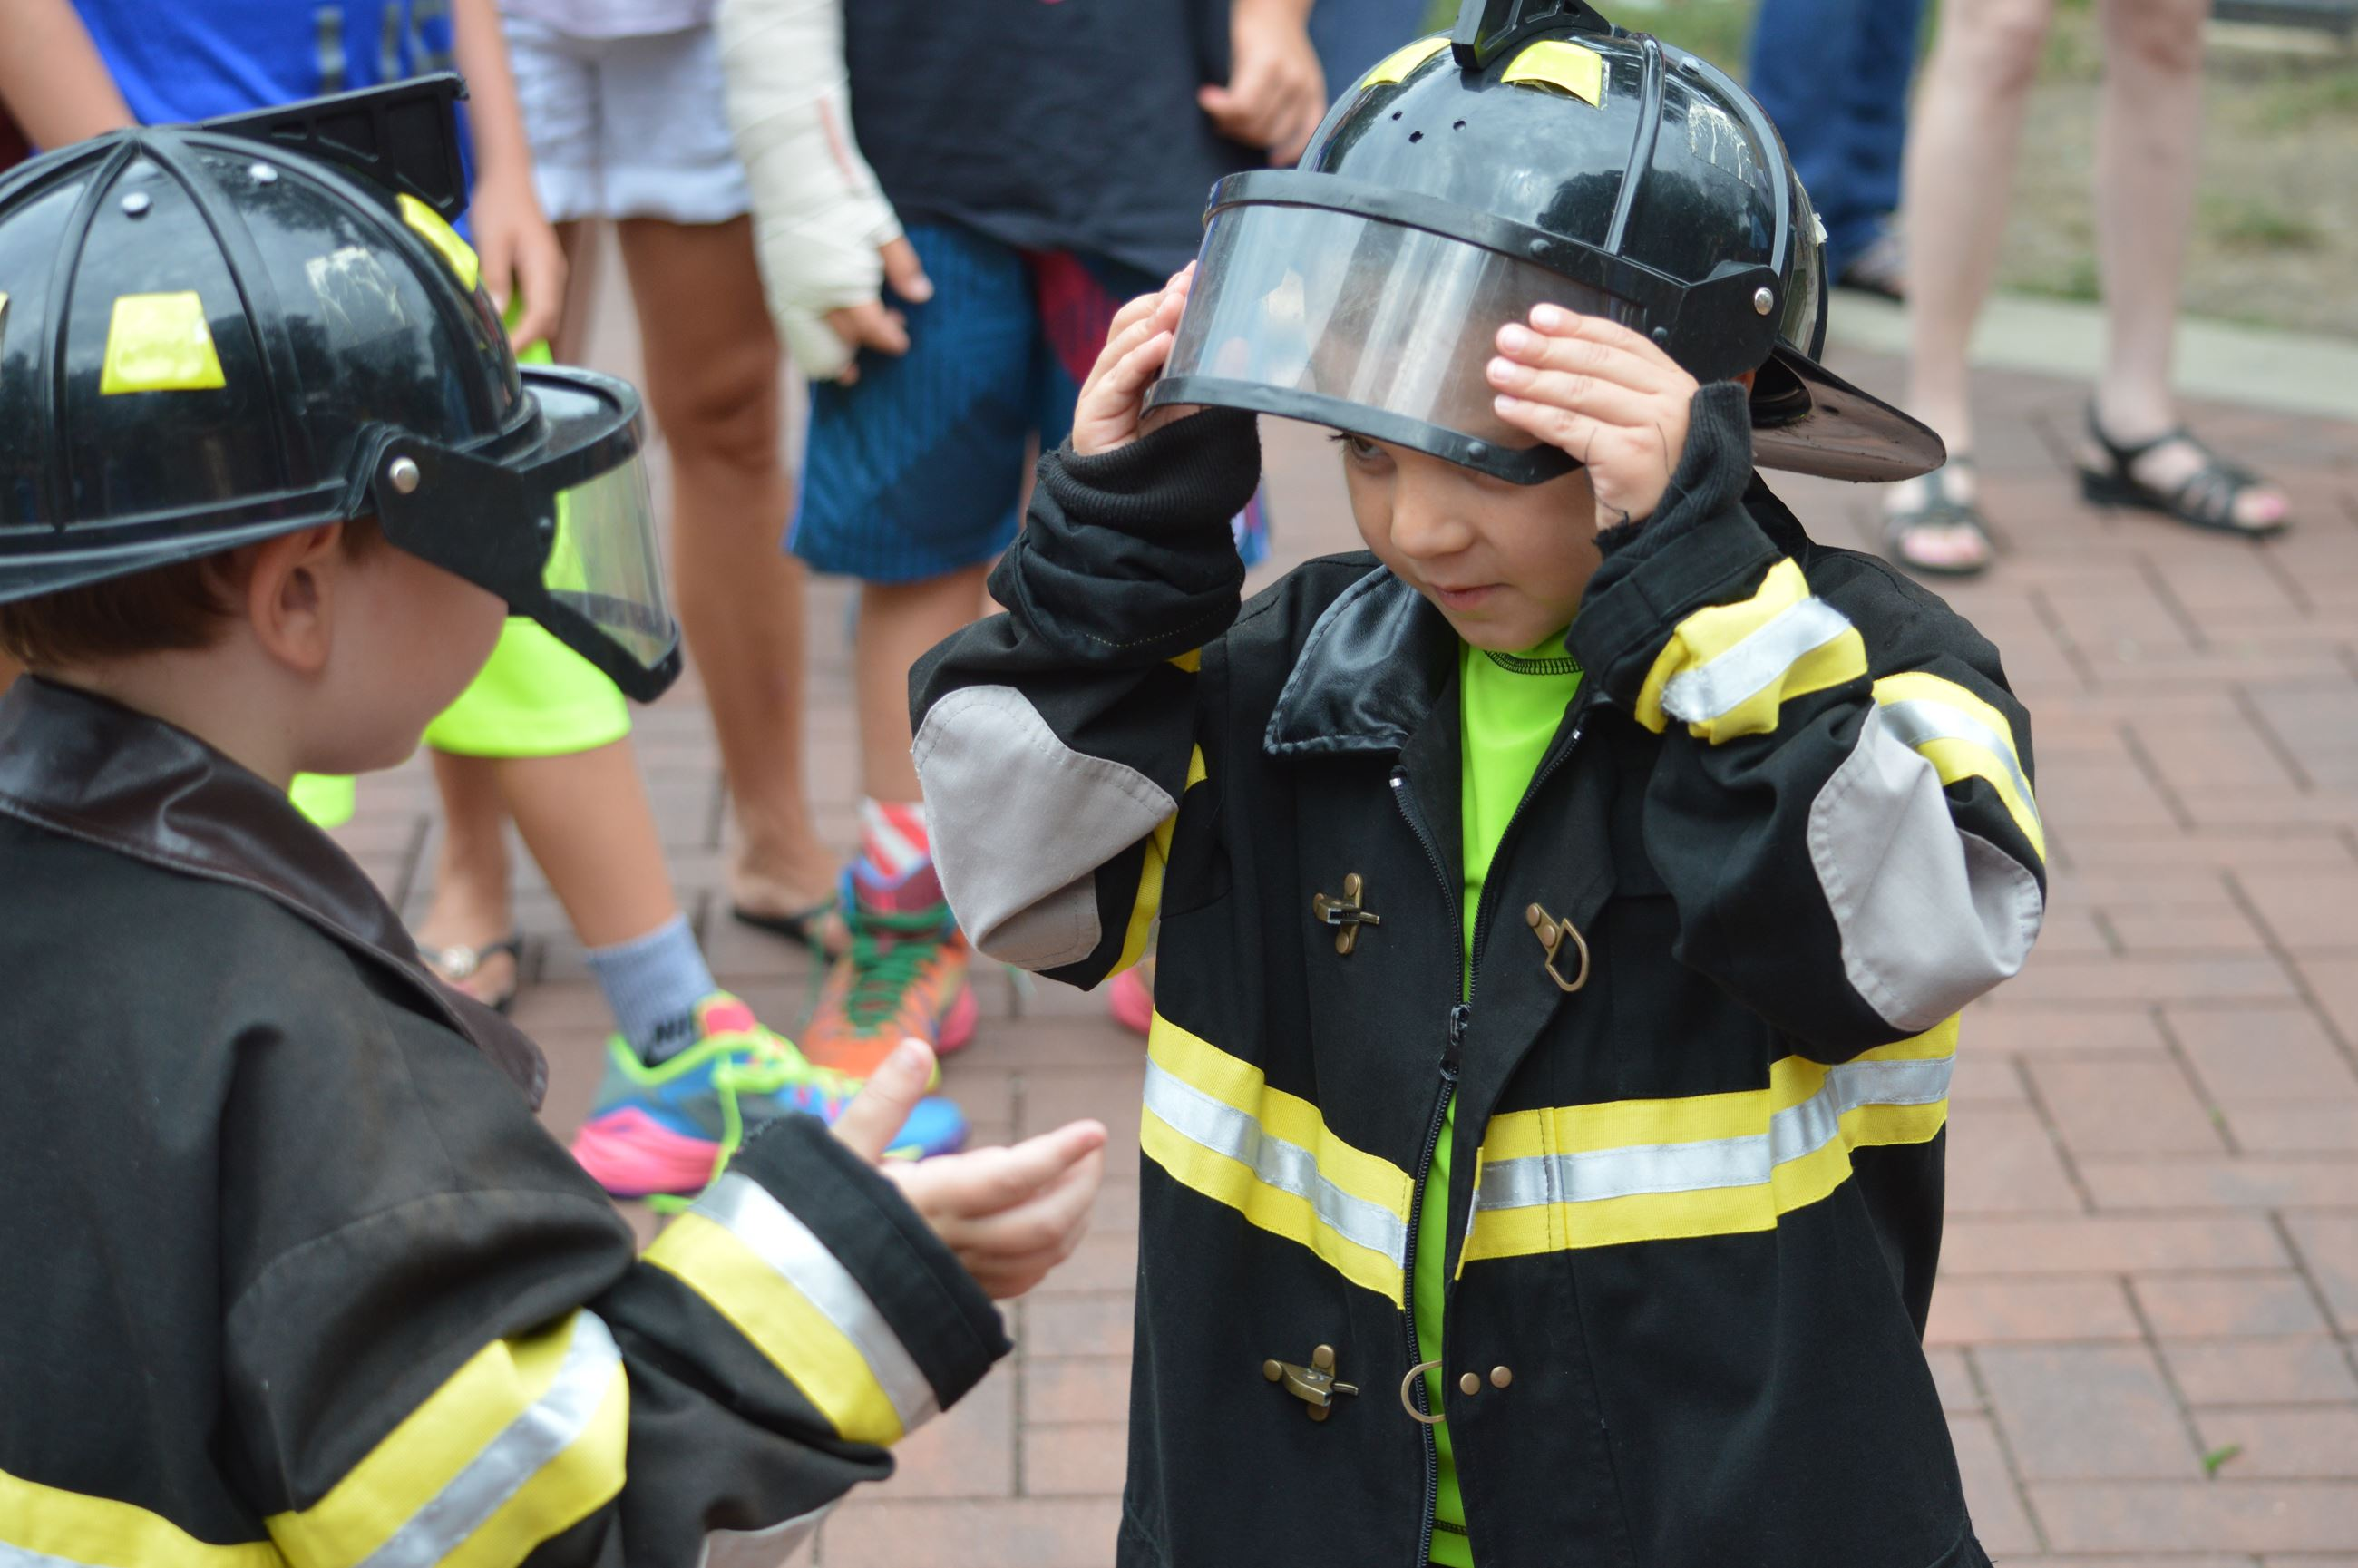 two little boys dressed as firemen putting on helmets